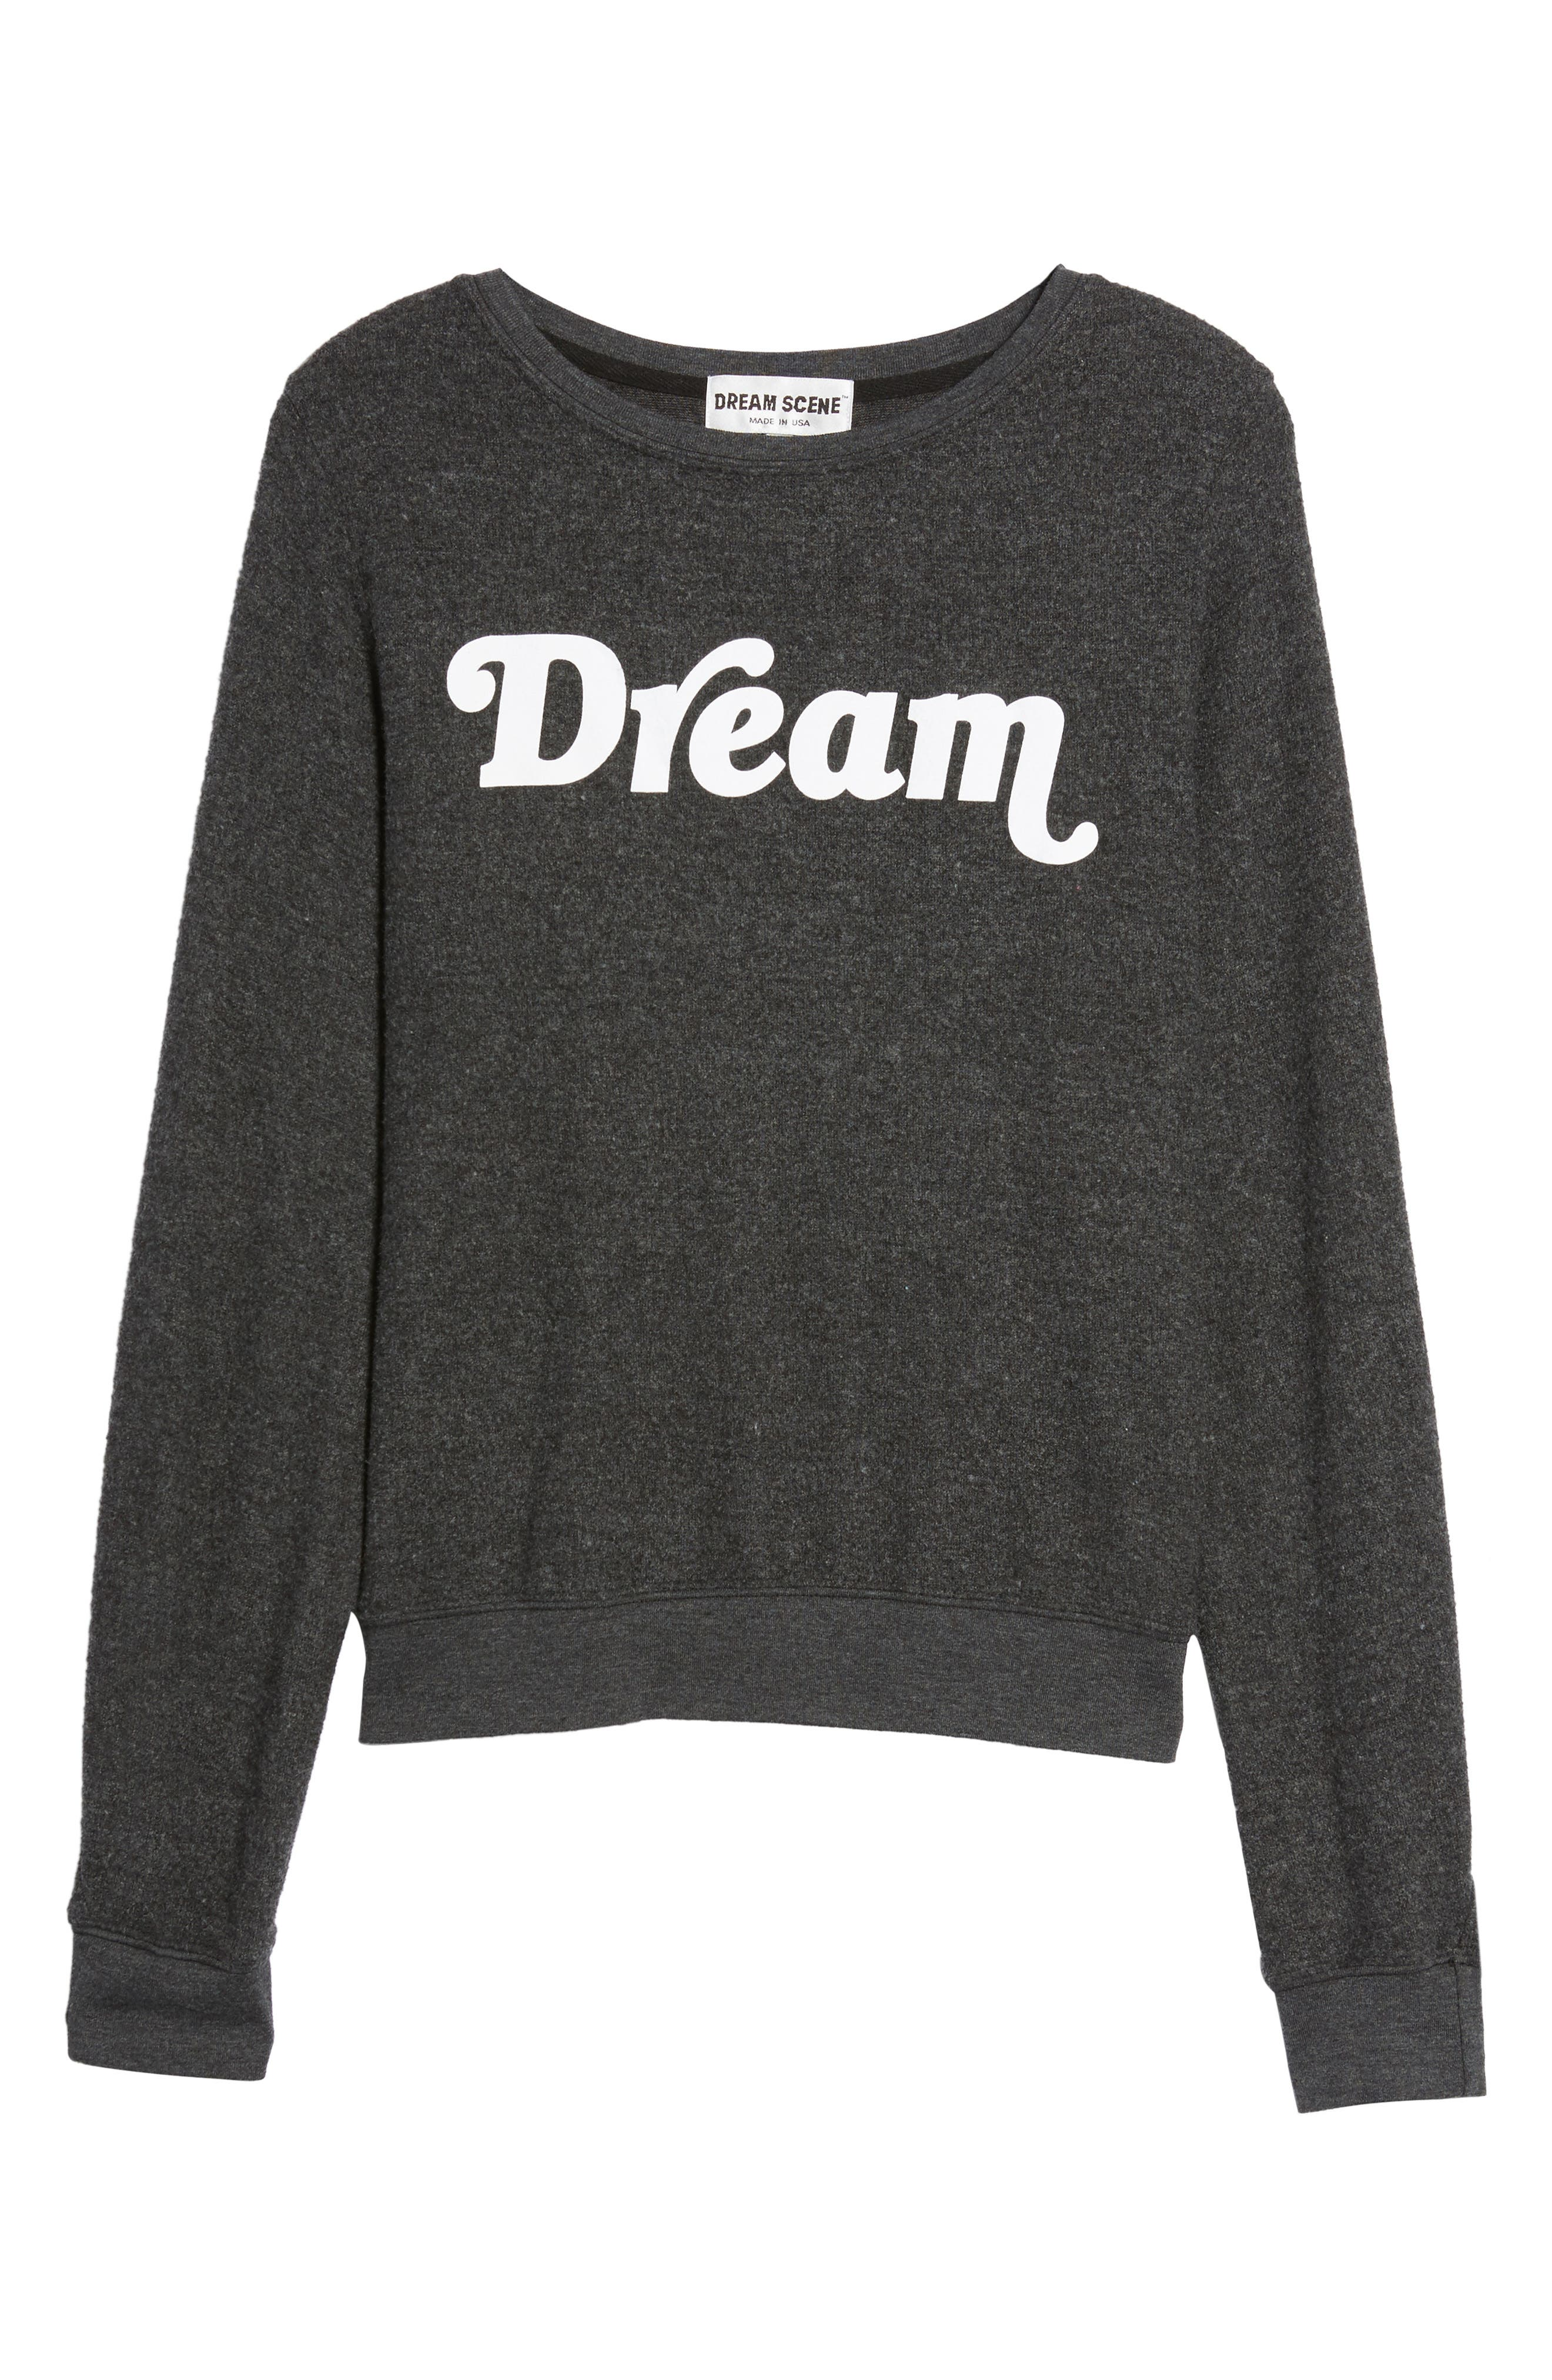 Dream Sweatshirt,                             Alternate thumbnail 6, color,                             001